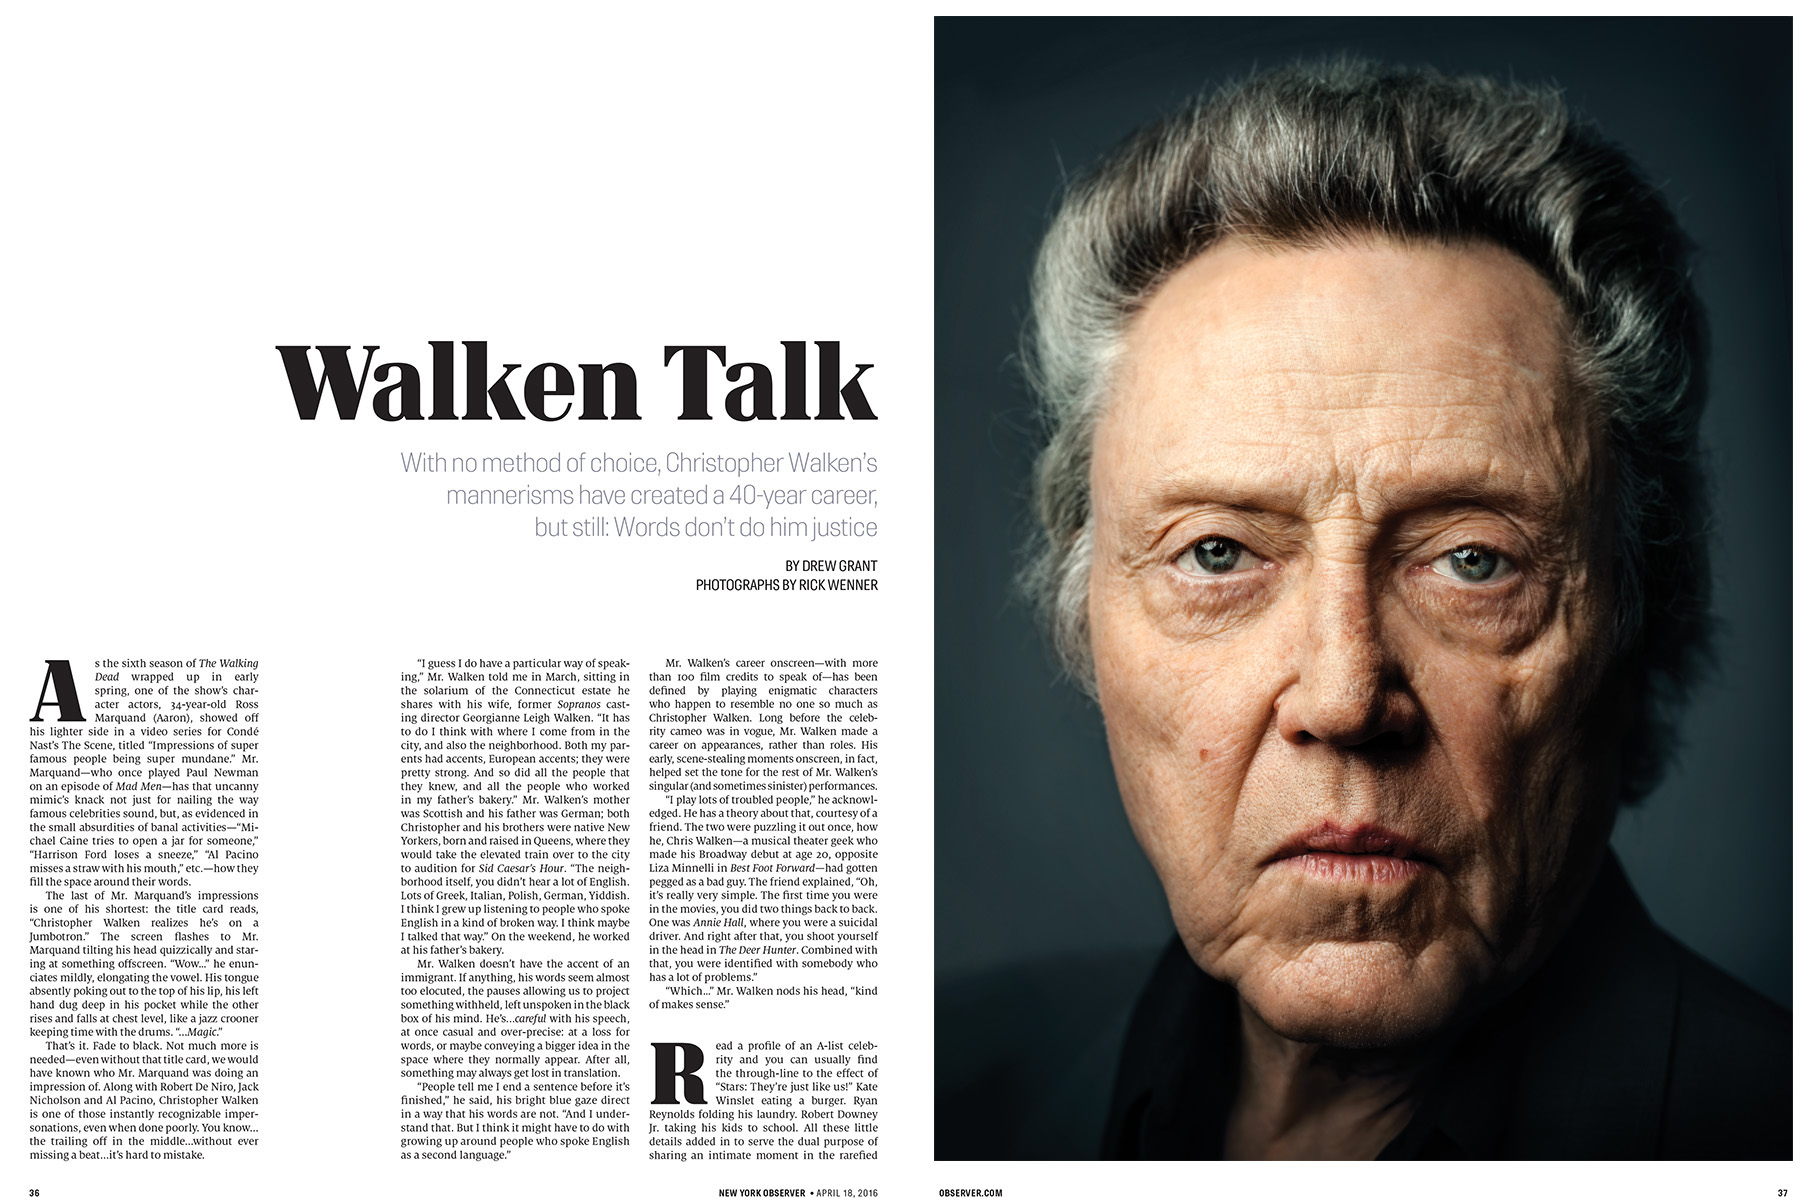 Observer - Christopher Walken